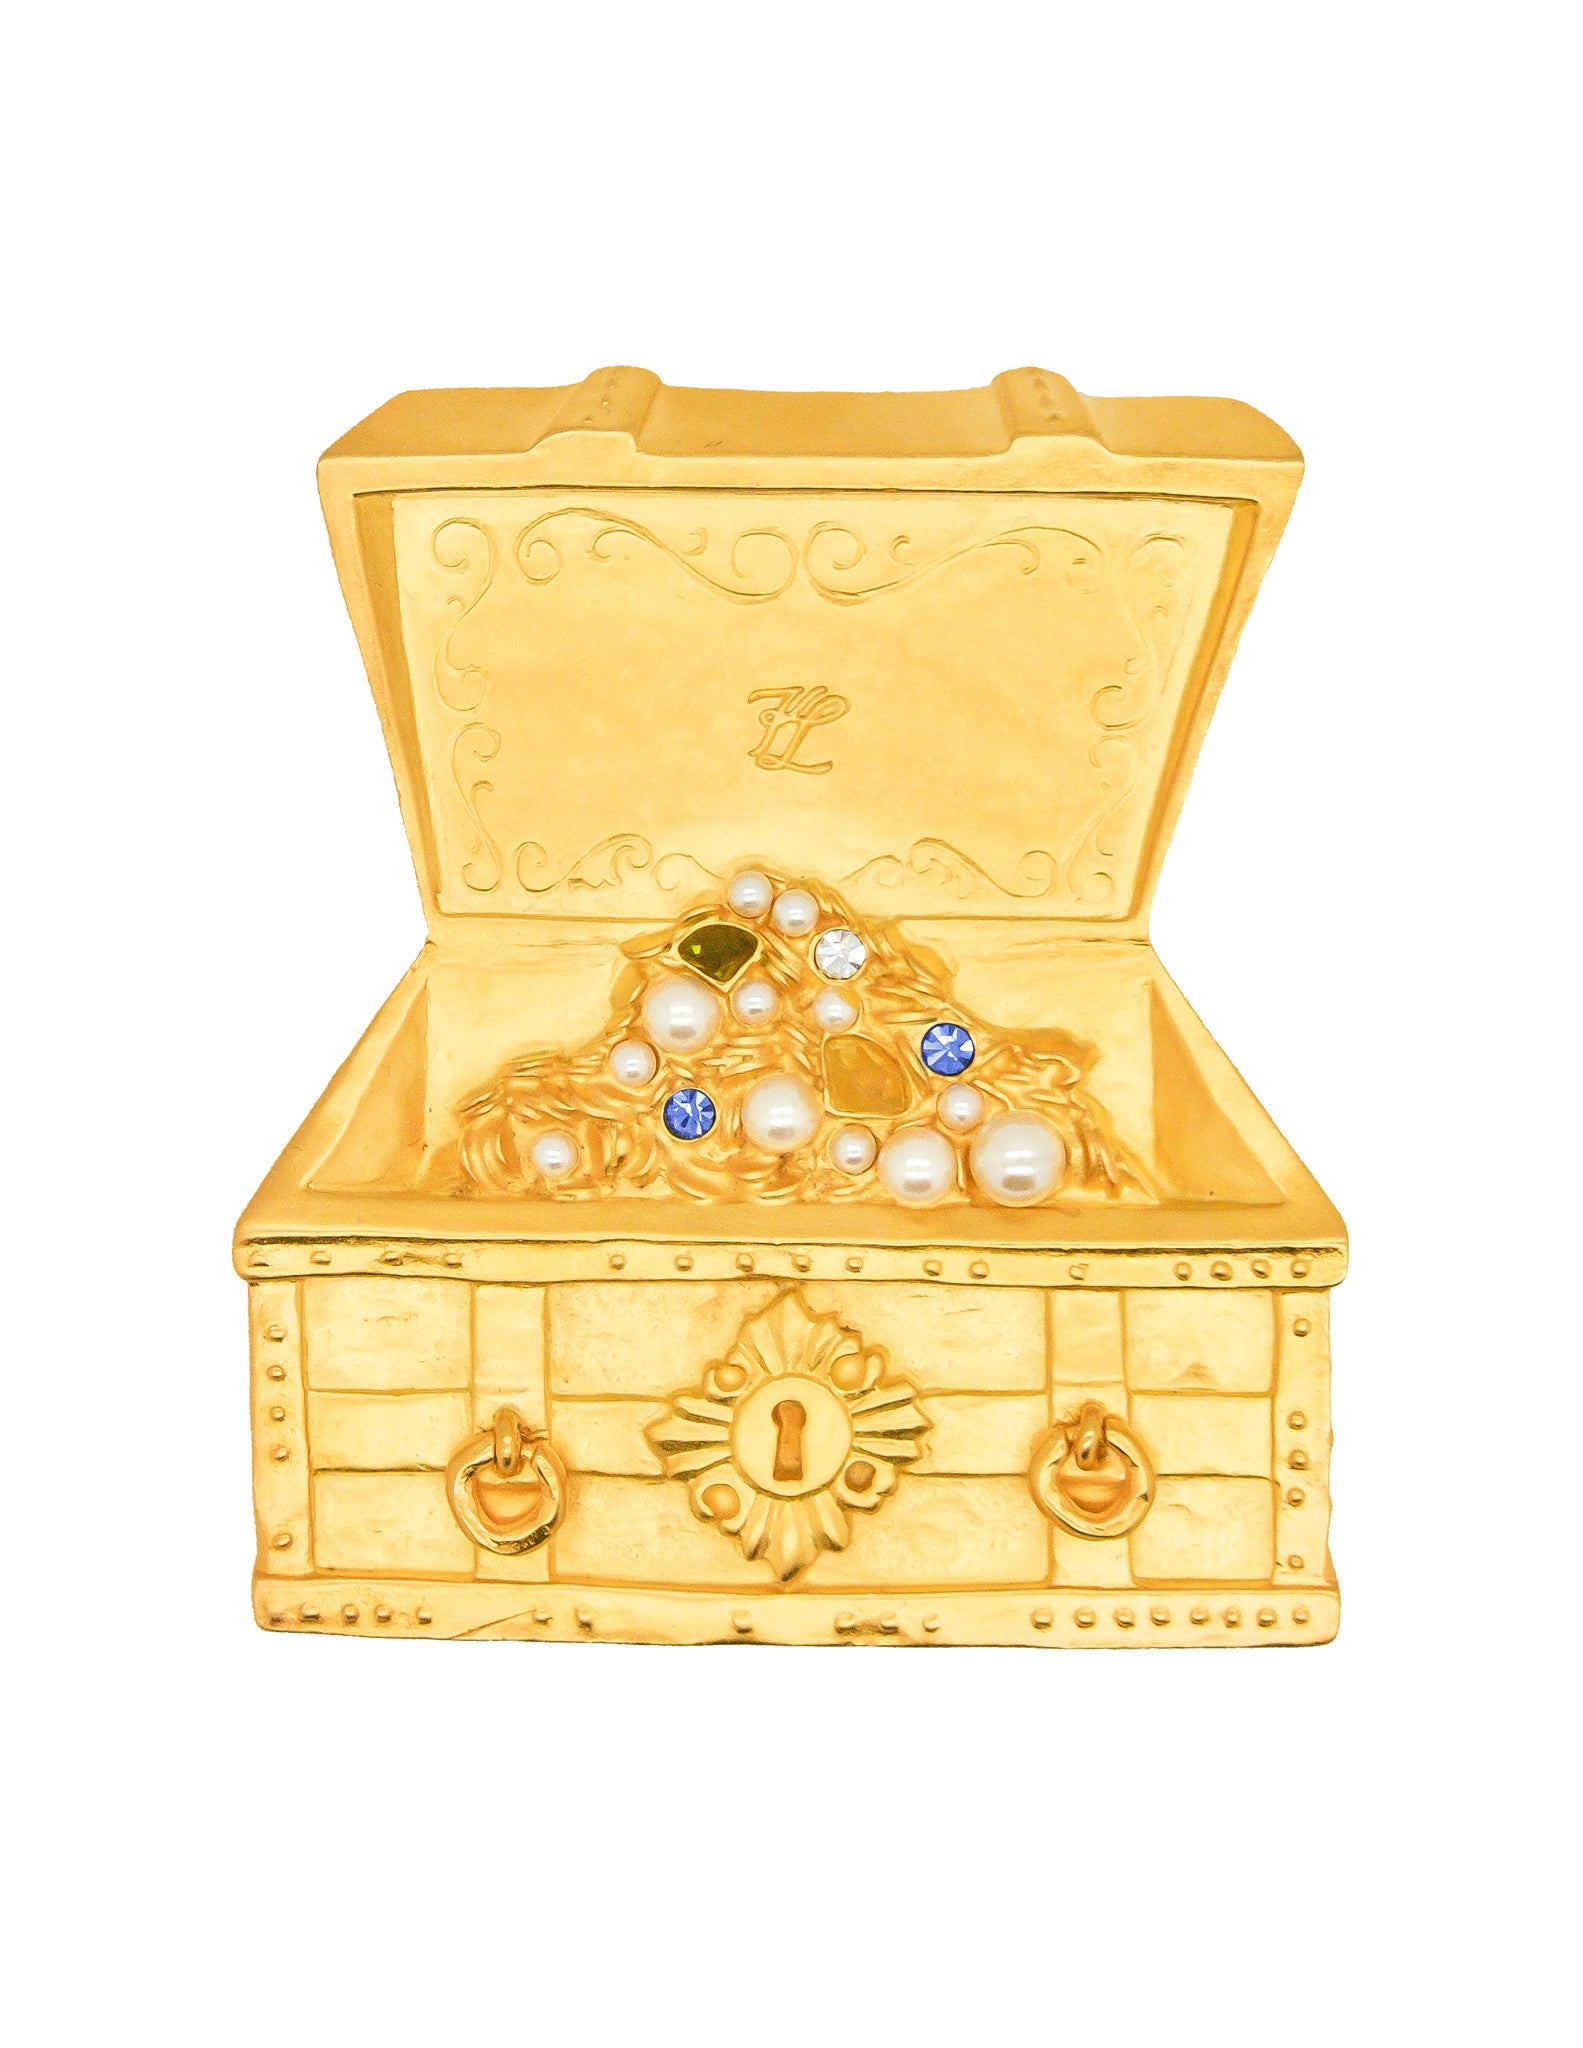 Karl Lagerfeld Vintage Treasure Chest Brooch - Amarcord Vintage Fashion  - 1